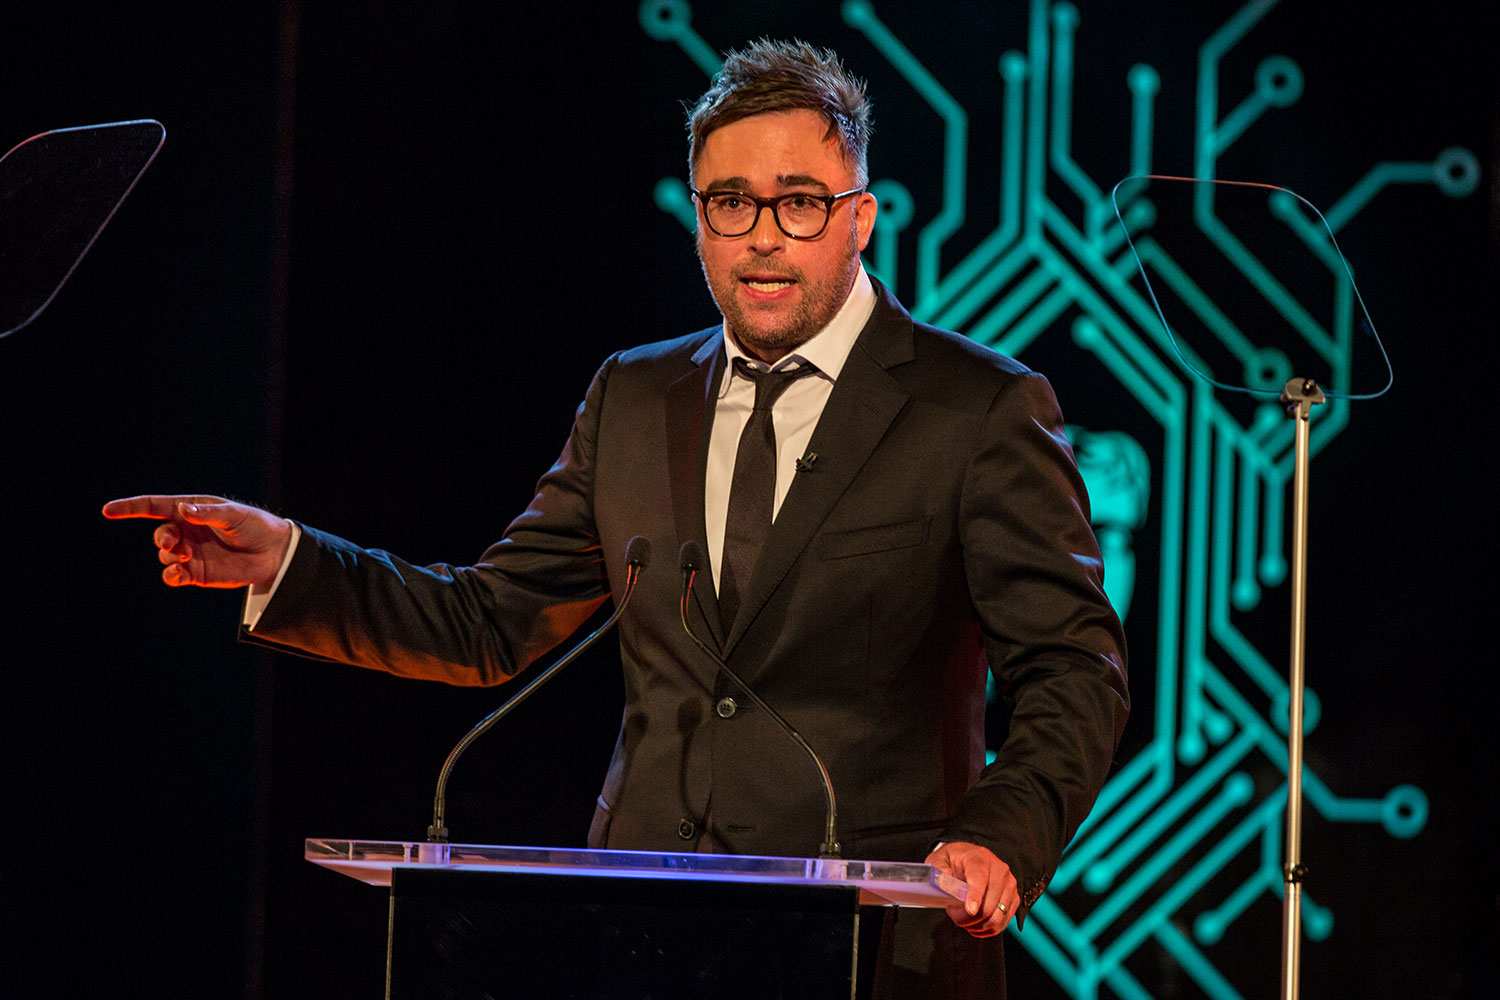 Danny Wallace hosts the 2017 BAFTA Games Awards in London.